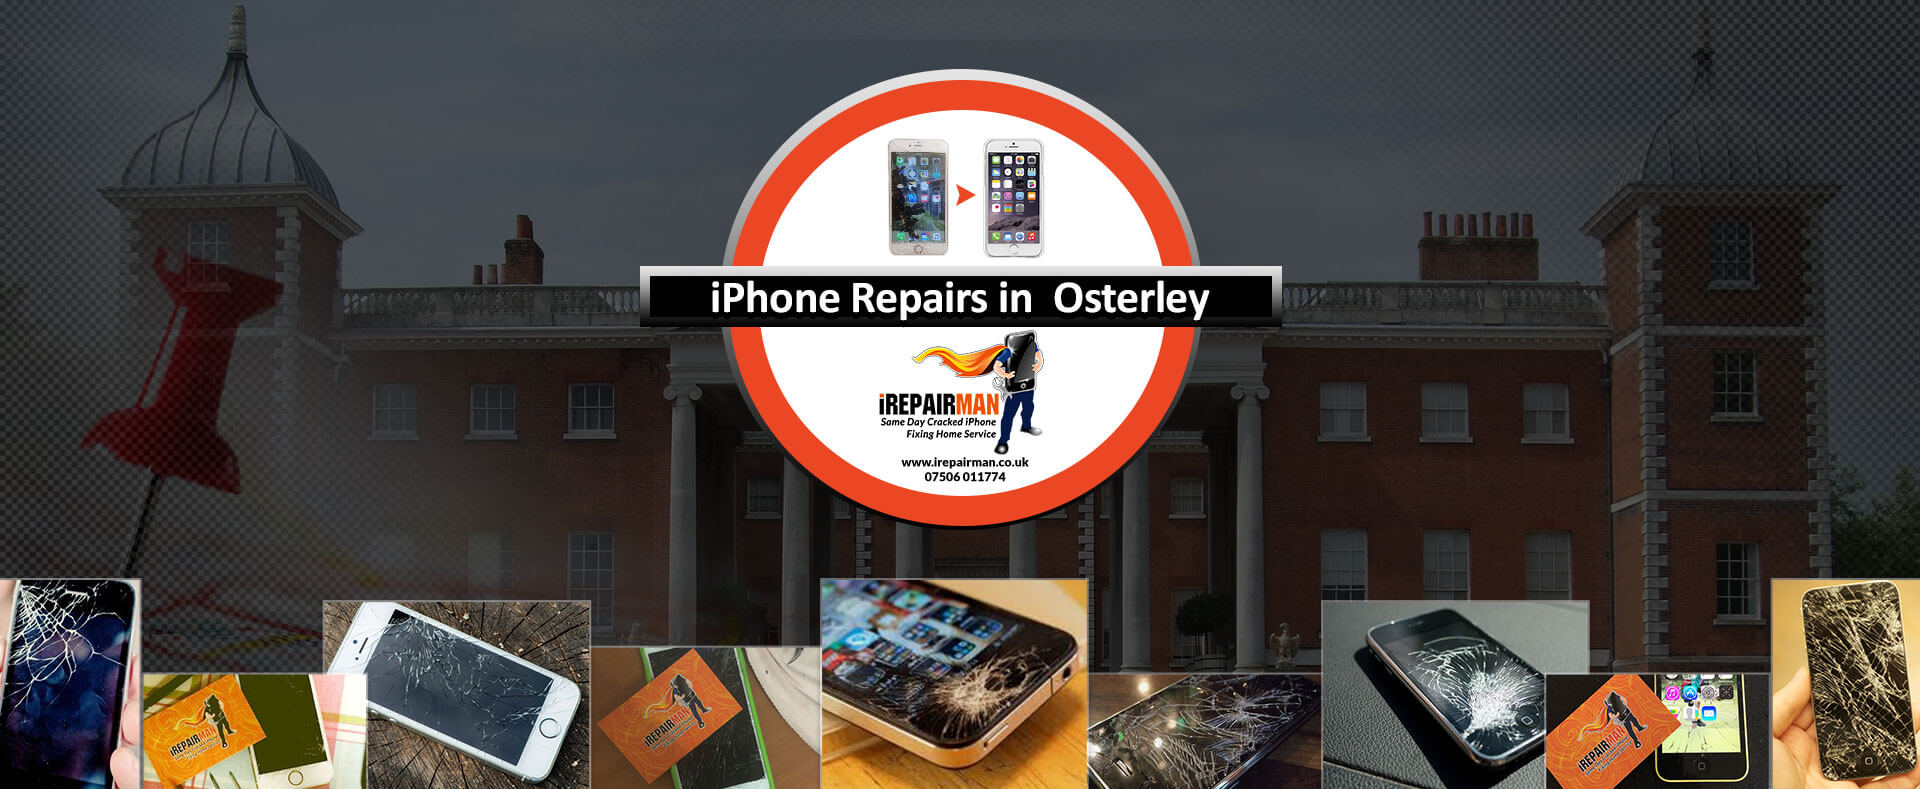 iPhone Repairs in Osterley